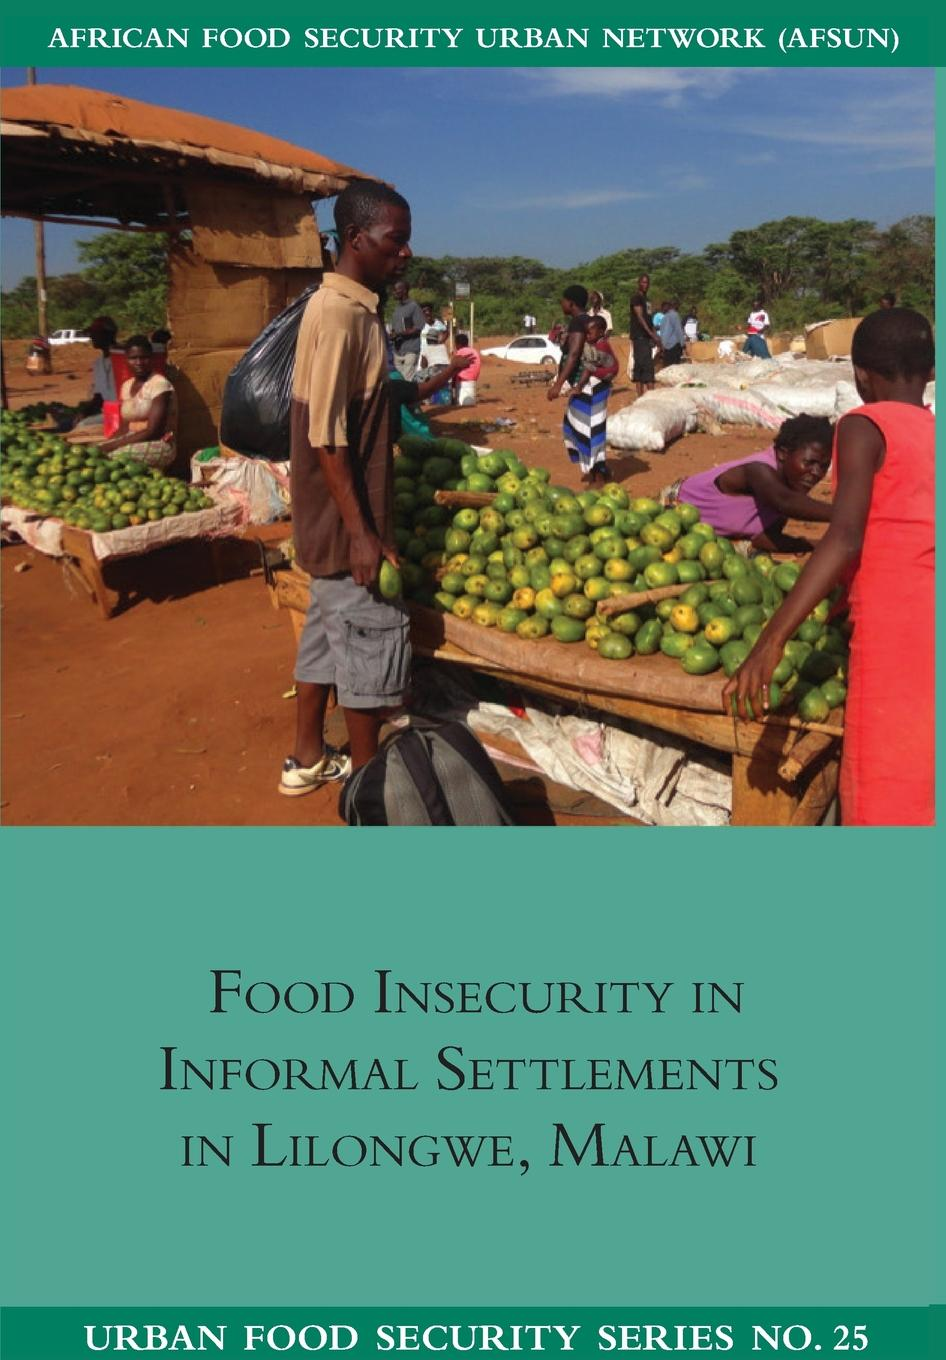 Emmanuel Chilanga, Liam Riley, Juliana Ngwira Food Insecurity in Informal Settlements in Lilongwe Malawi women s indigenous knowledge in household food security